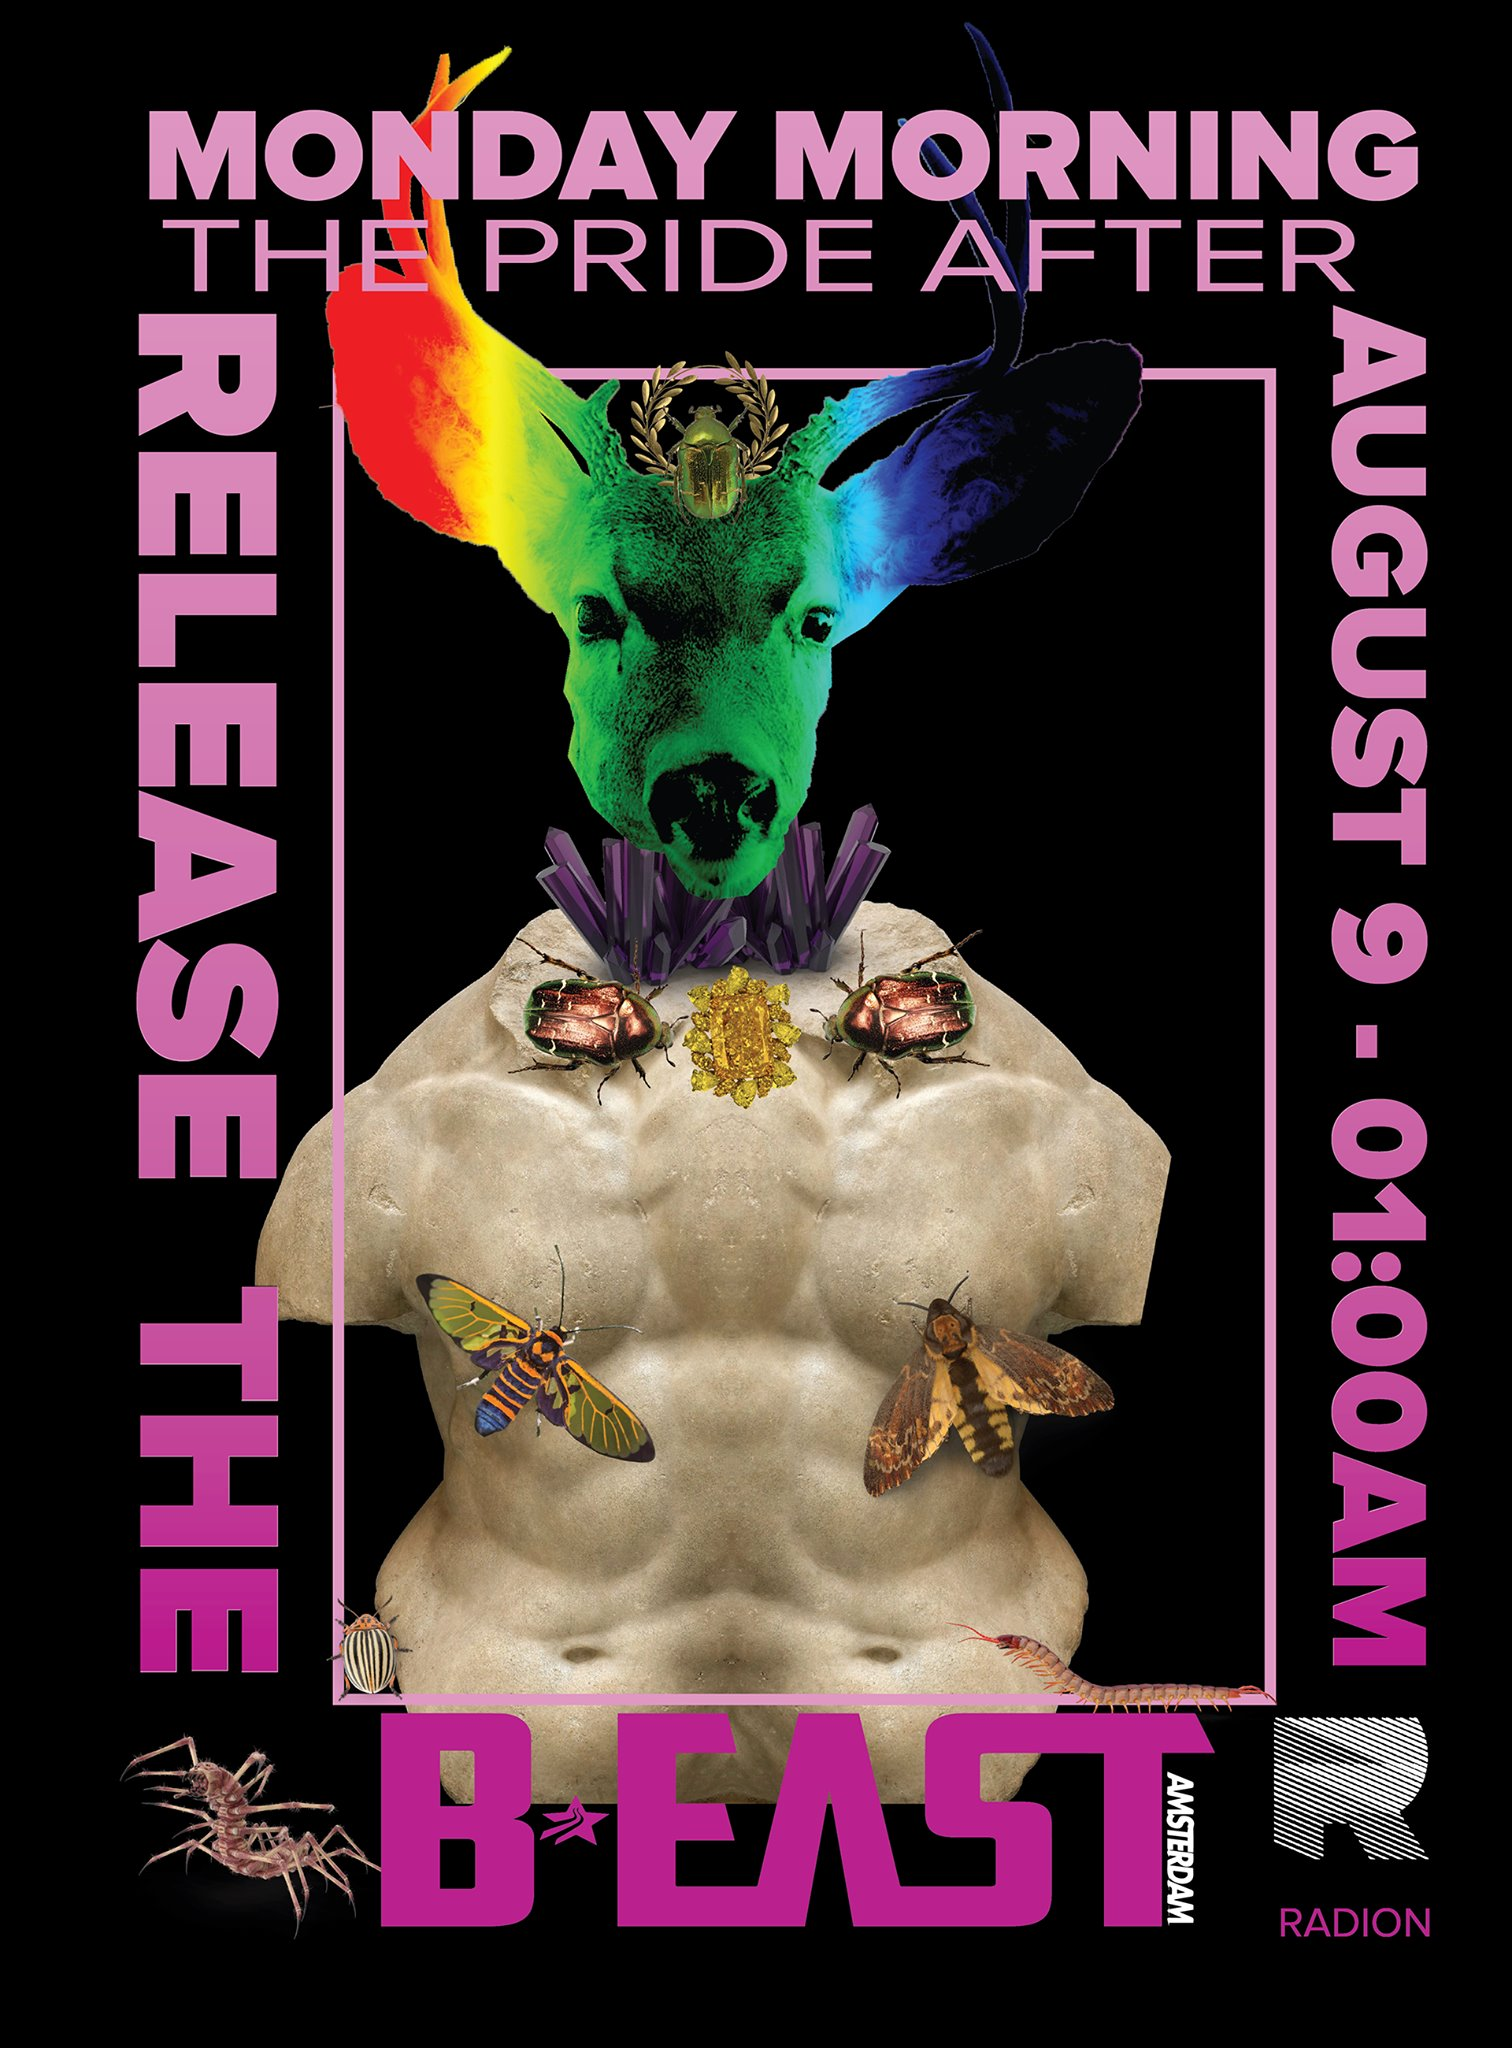 B:EAST / Pride AFTER - 2021 - Gay Techno Pride After Party